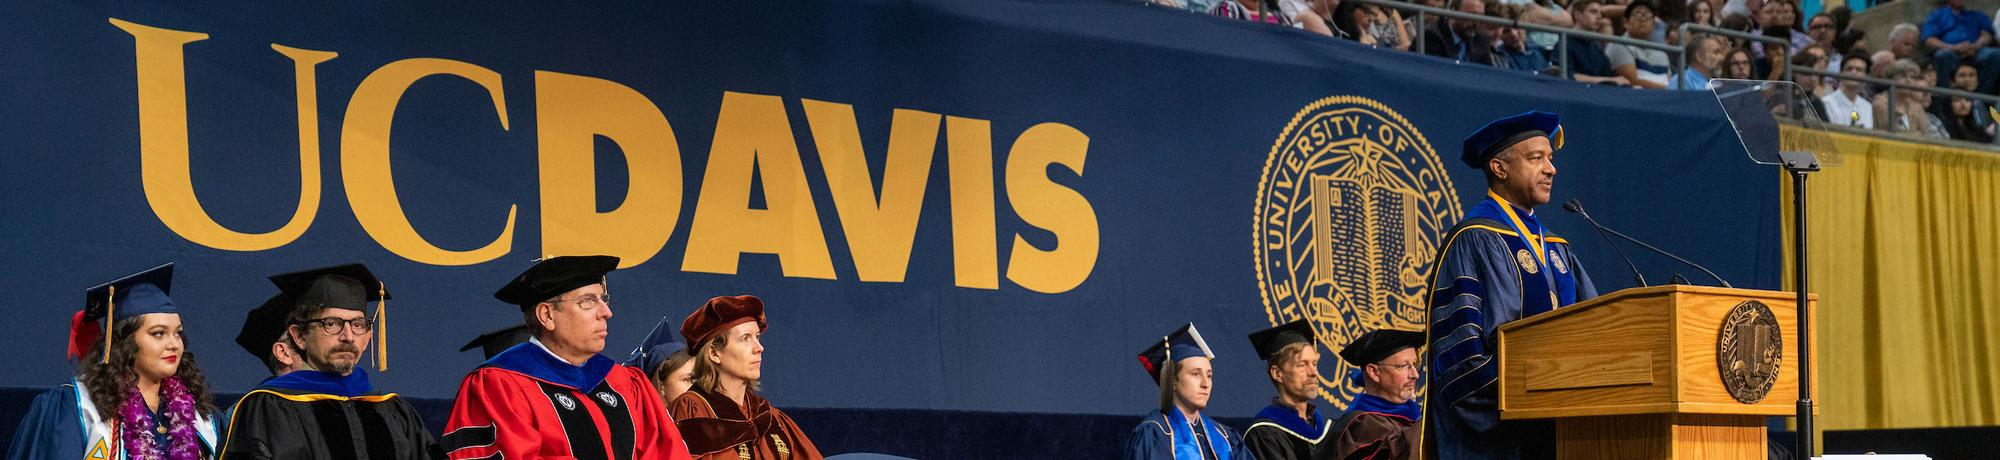 Gary May speaking at Commencement with a large UC Davis logo in the background